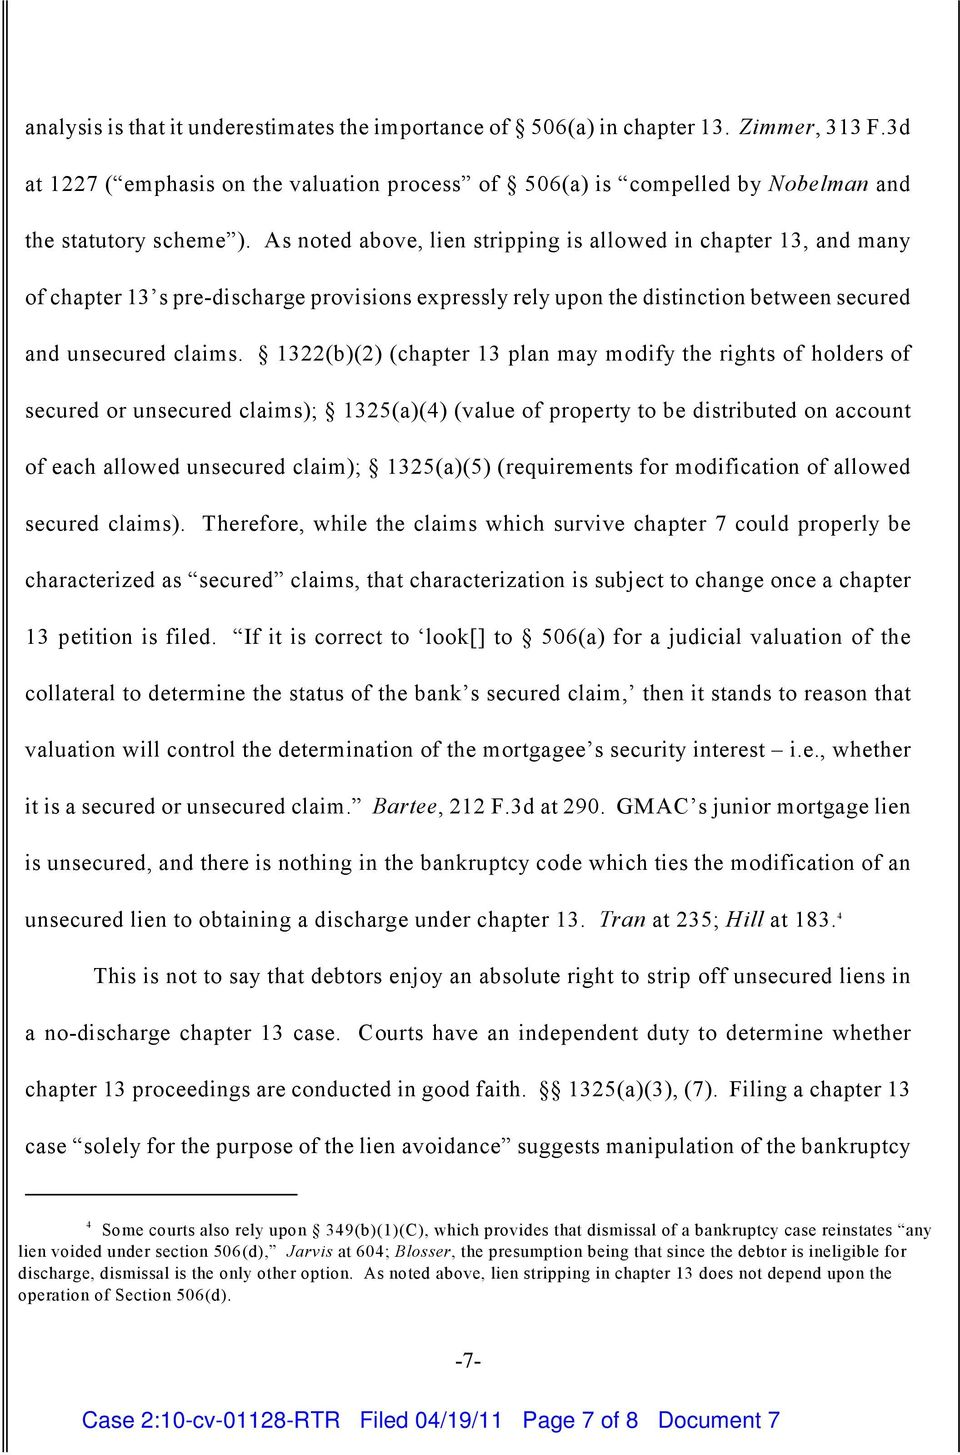 1322(b)(2) (chapter 13 plan may modify the rights of holders of secured or unsecured claims); 1325(a)(4) (value of property to be distributed on account of each allowed unsecured claim); 1325(a)(5)